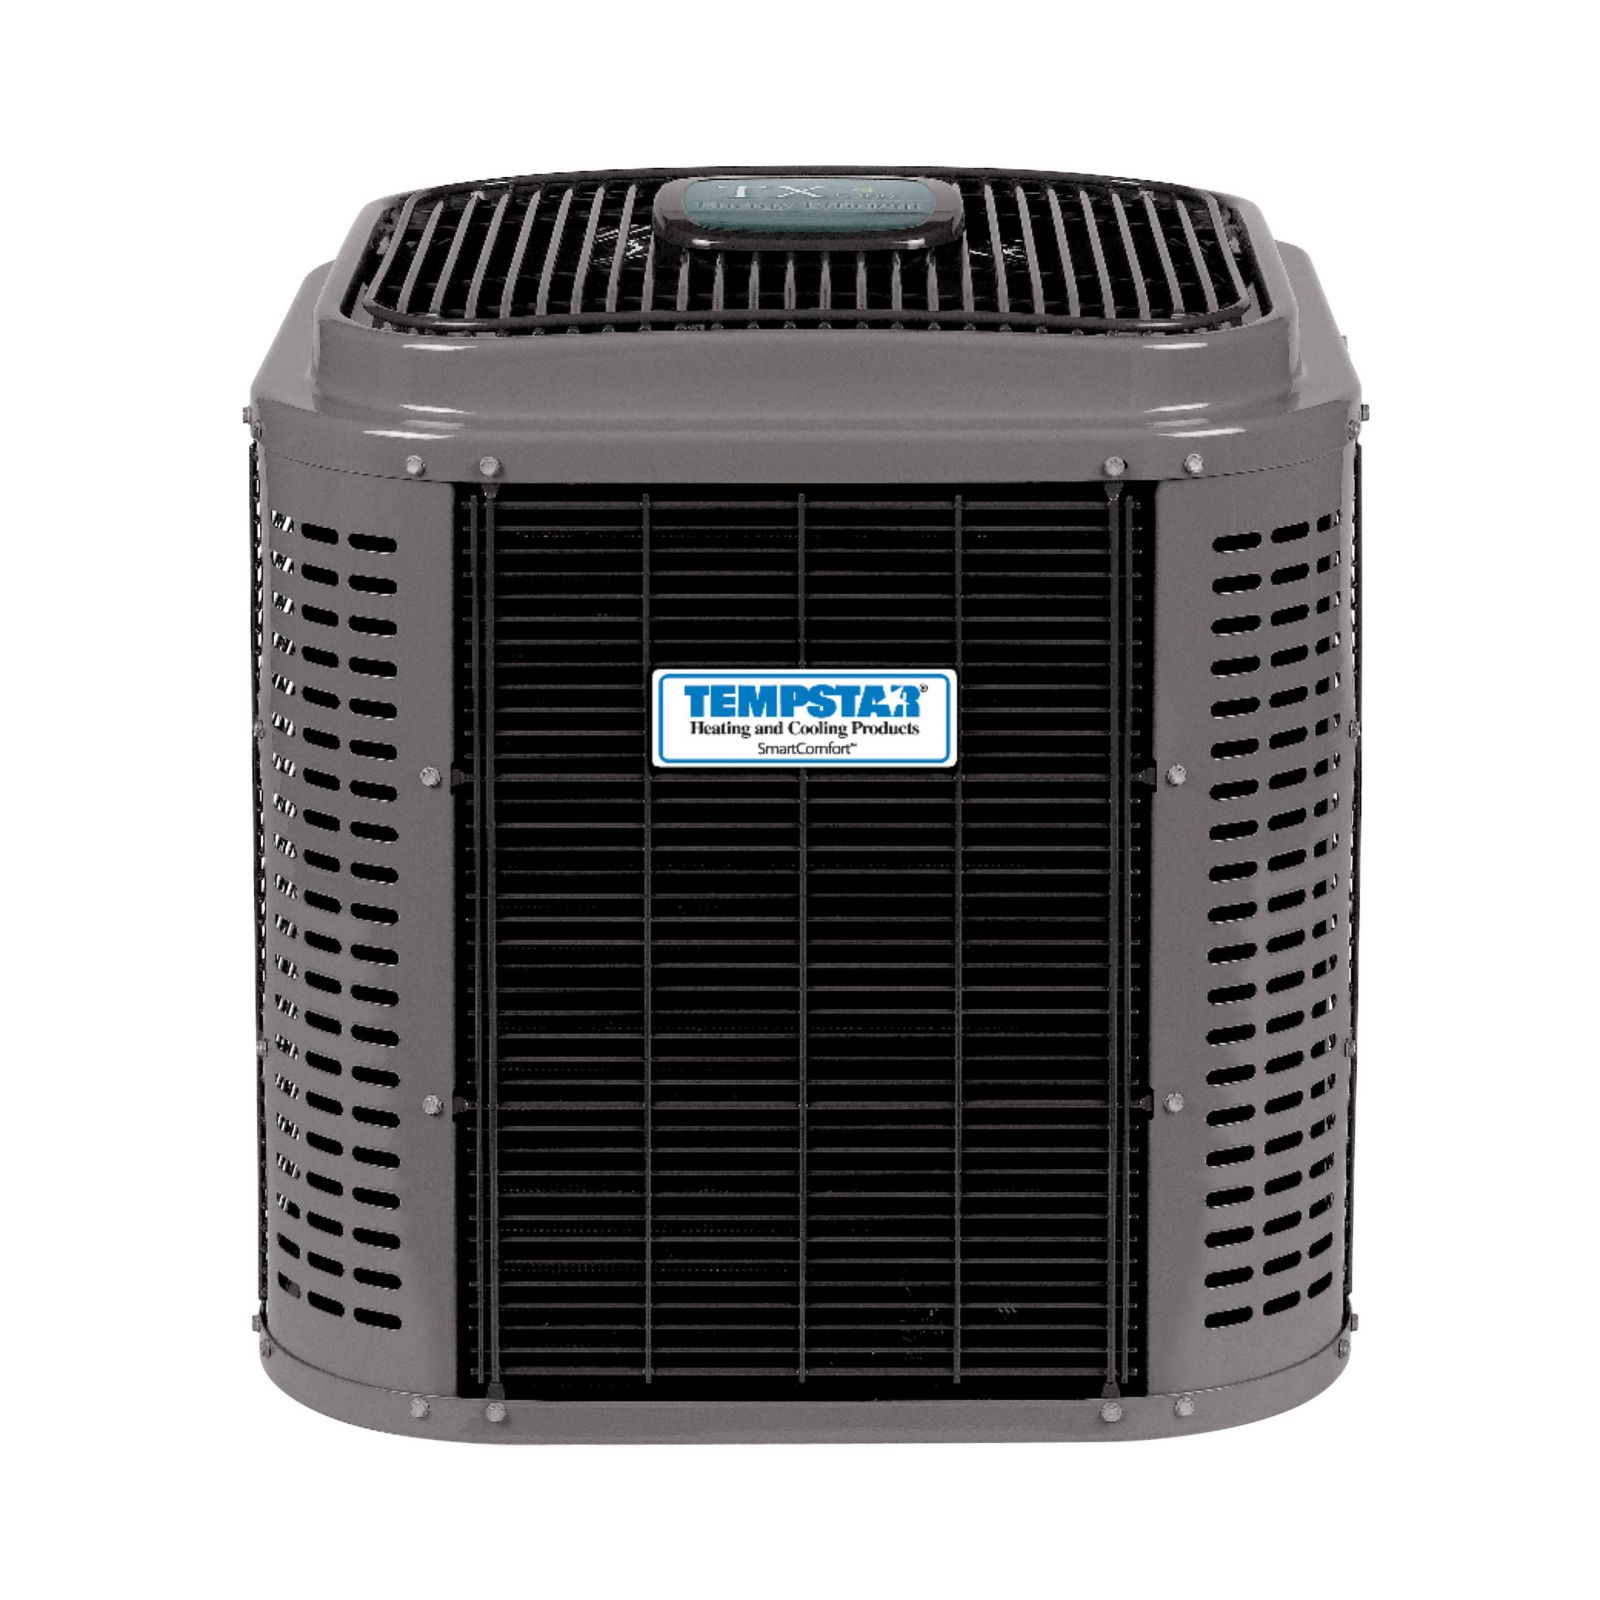 Tempstar TXA649GKA - Mainline Series - 4 Ton, 16 SEER, R410A, Air Conditioner, Coil Guard Grille, 208/230-1-60